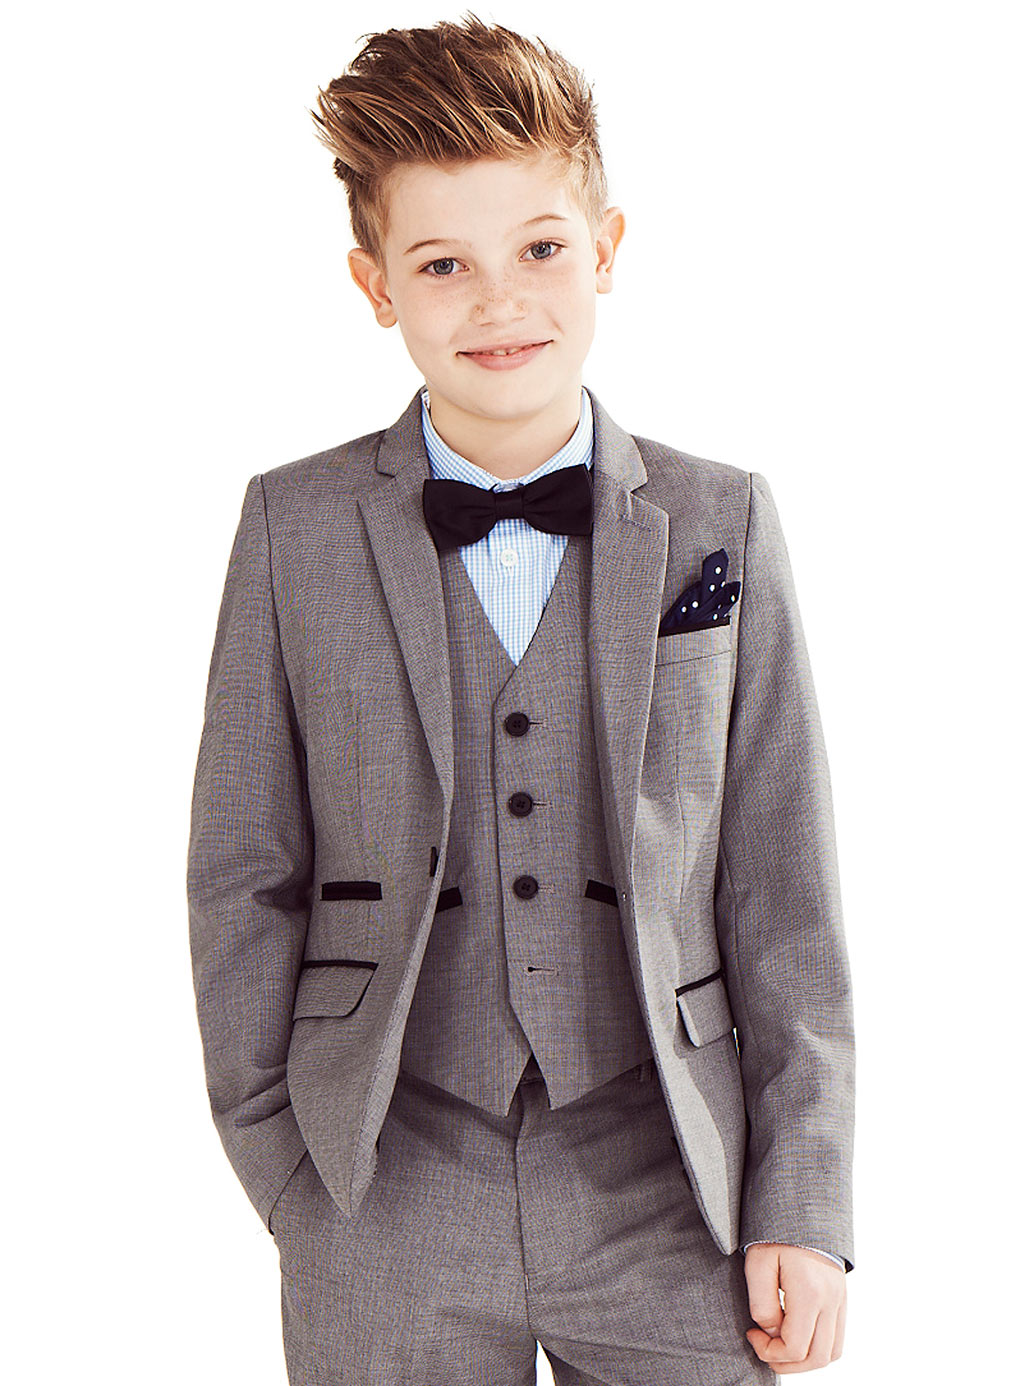 Selecting The Right Kids Suits For Your Child